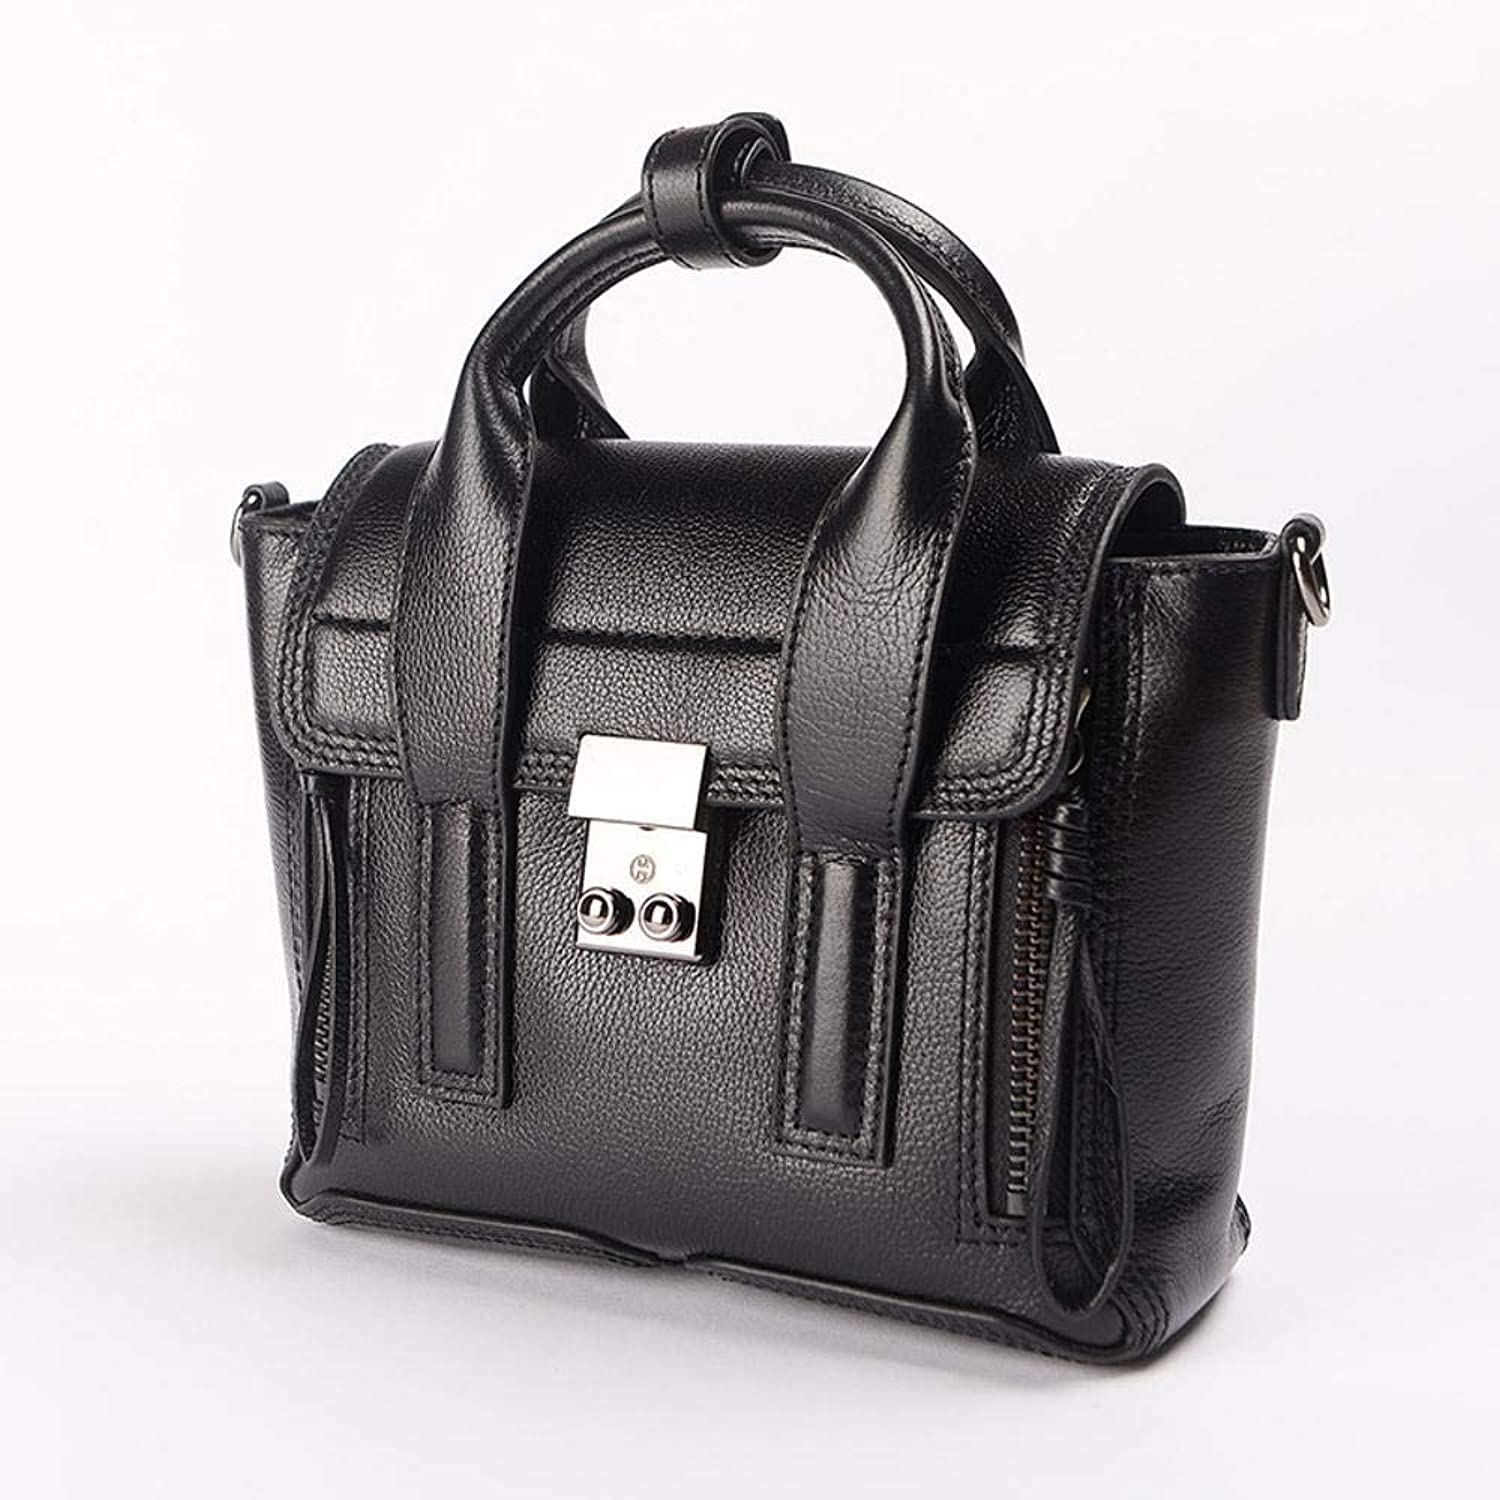 Ladies Handbag Leather Bag Fashion Head Leather Handbag Simple Single Shoulder Messenger Bag 30  20  10cm